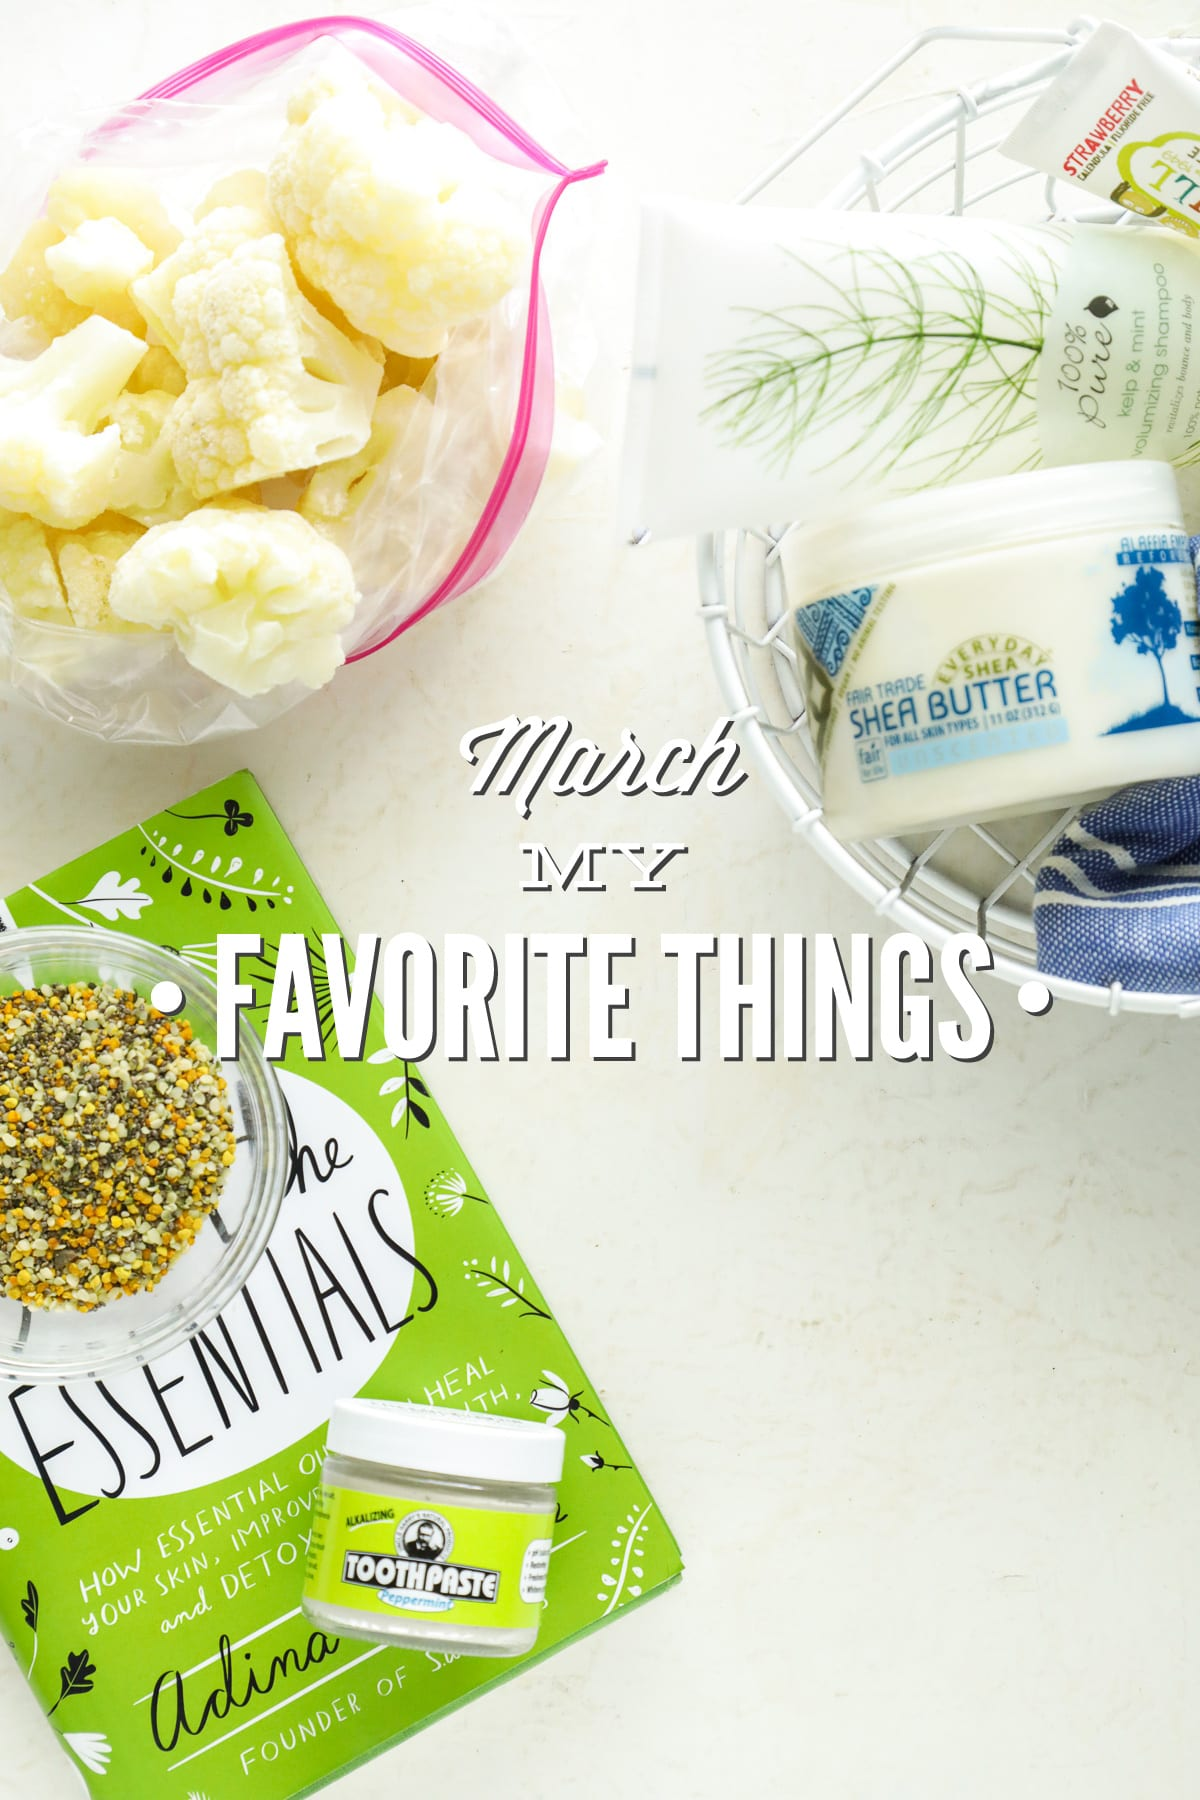 March: My Favorite Things